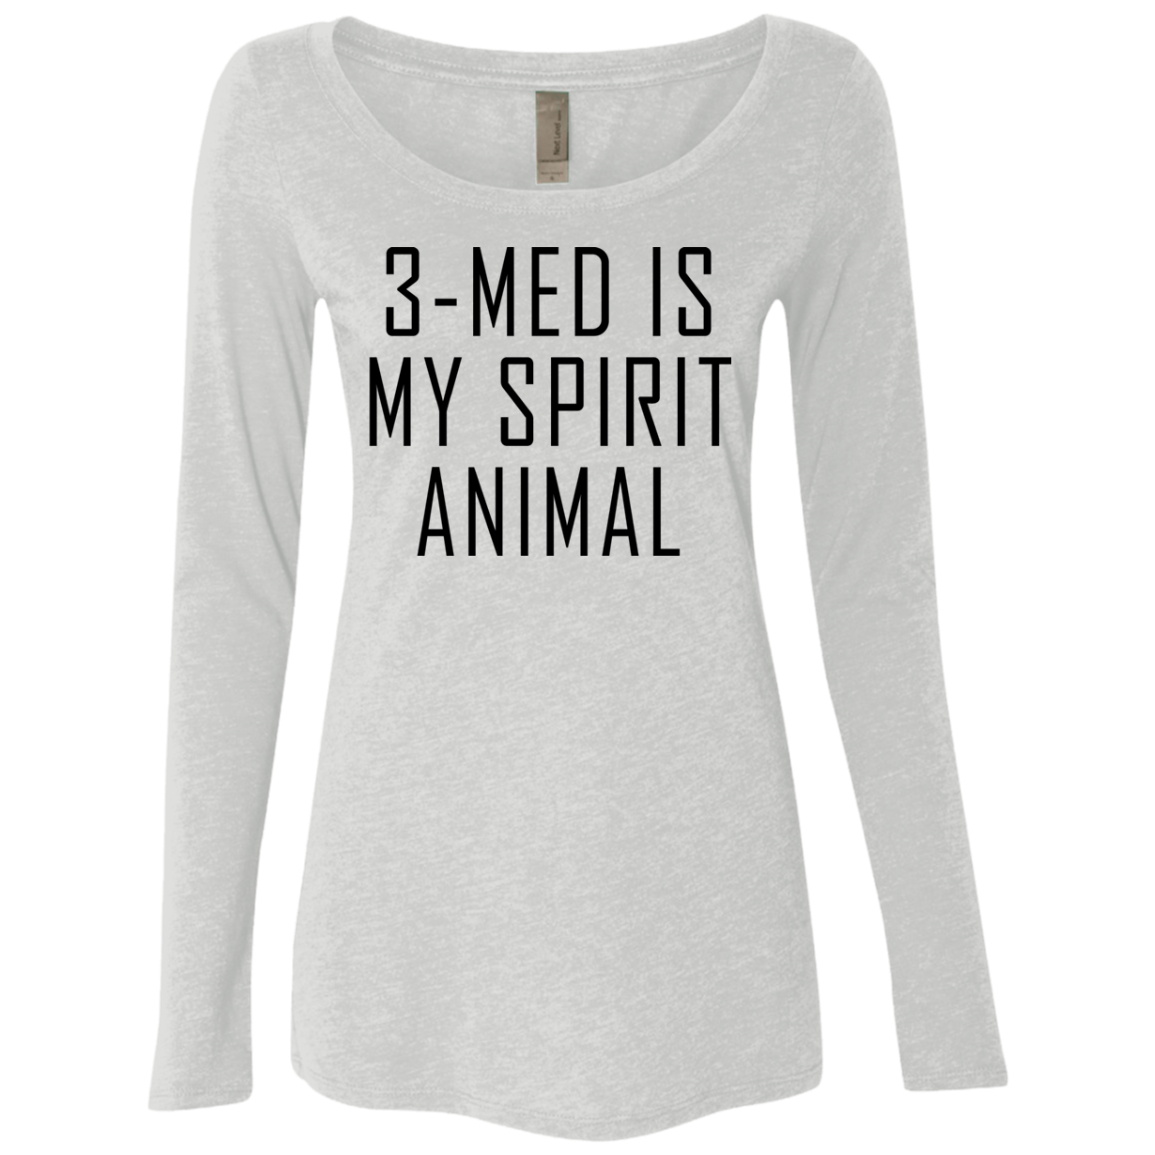 3-Med Is My Spirit Animal Women's Long Sleeve Tee